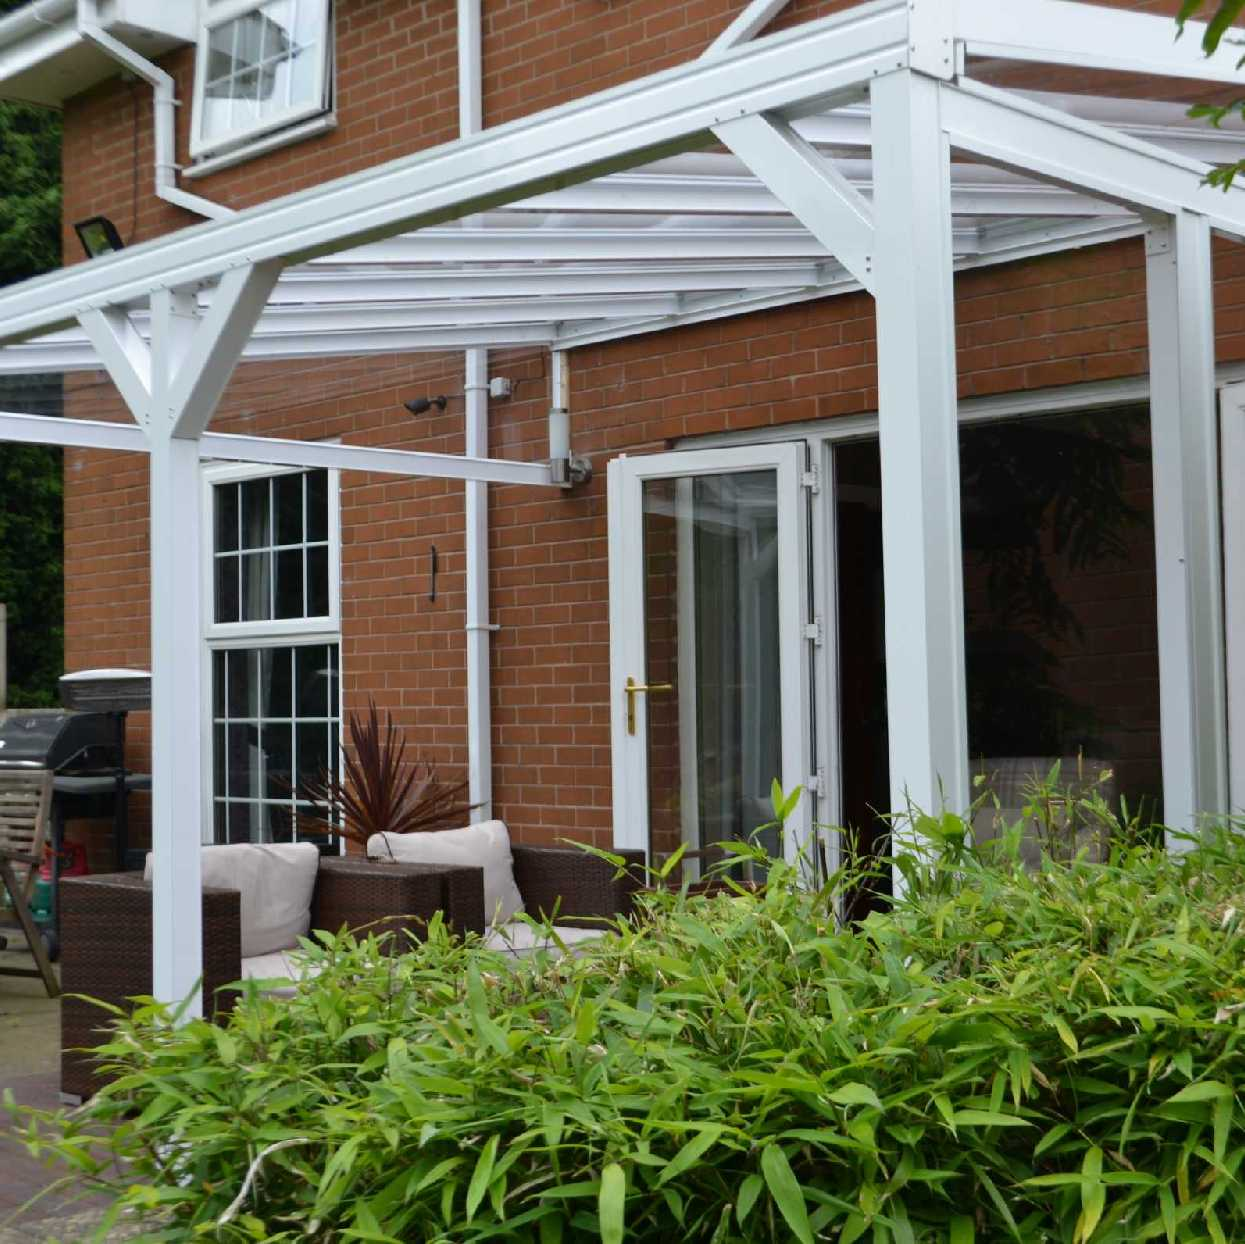 Omega Smart White Lean-To Canopy with 6mm Glass Clear Plate Polycarbonate Glazing - 6.3m (W) x 3.0m (P), (4) Supporting Posts from Omega Build